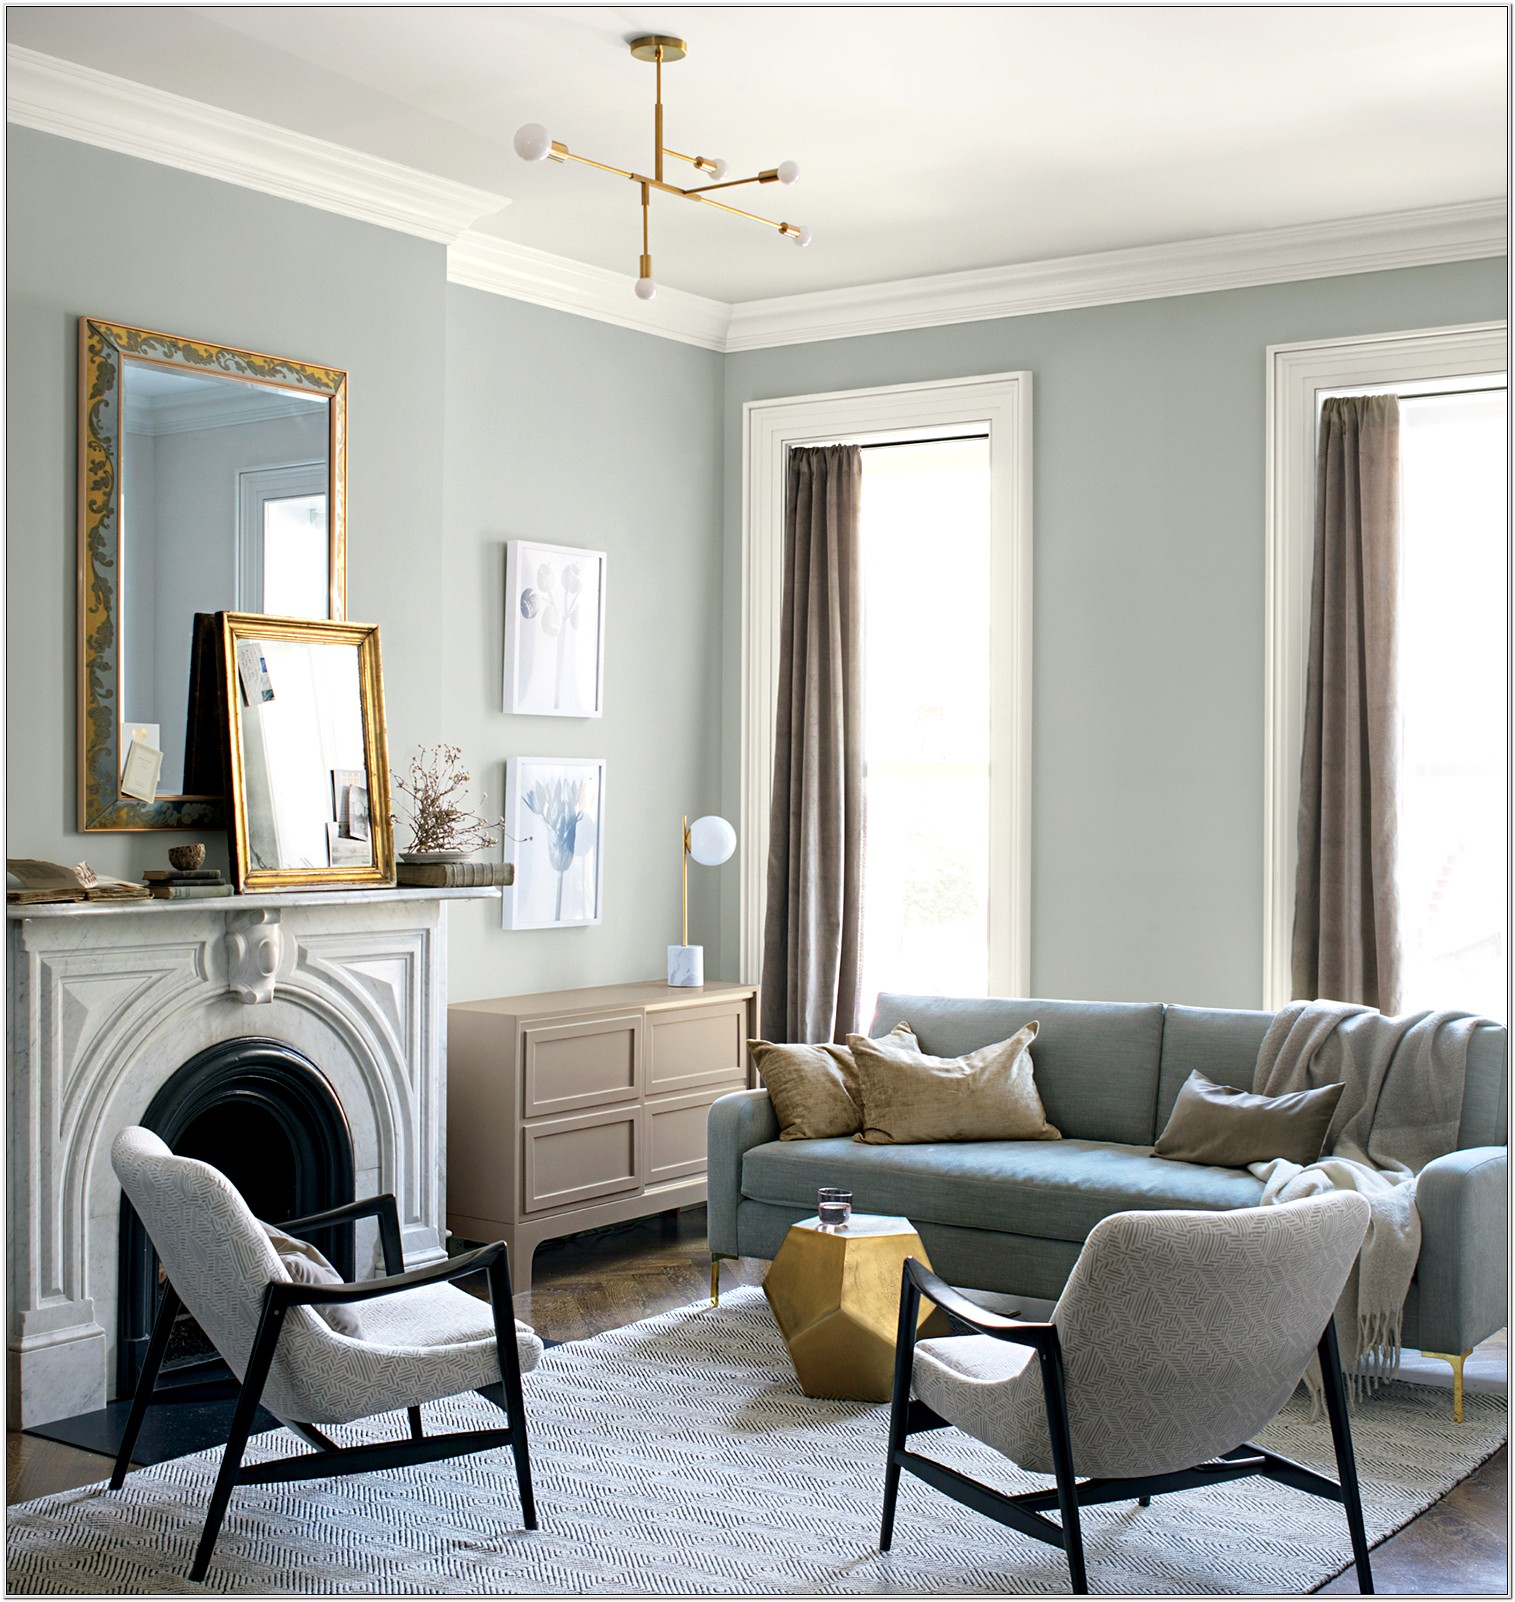 Layout Of Small Multi Entrance Living Room